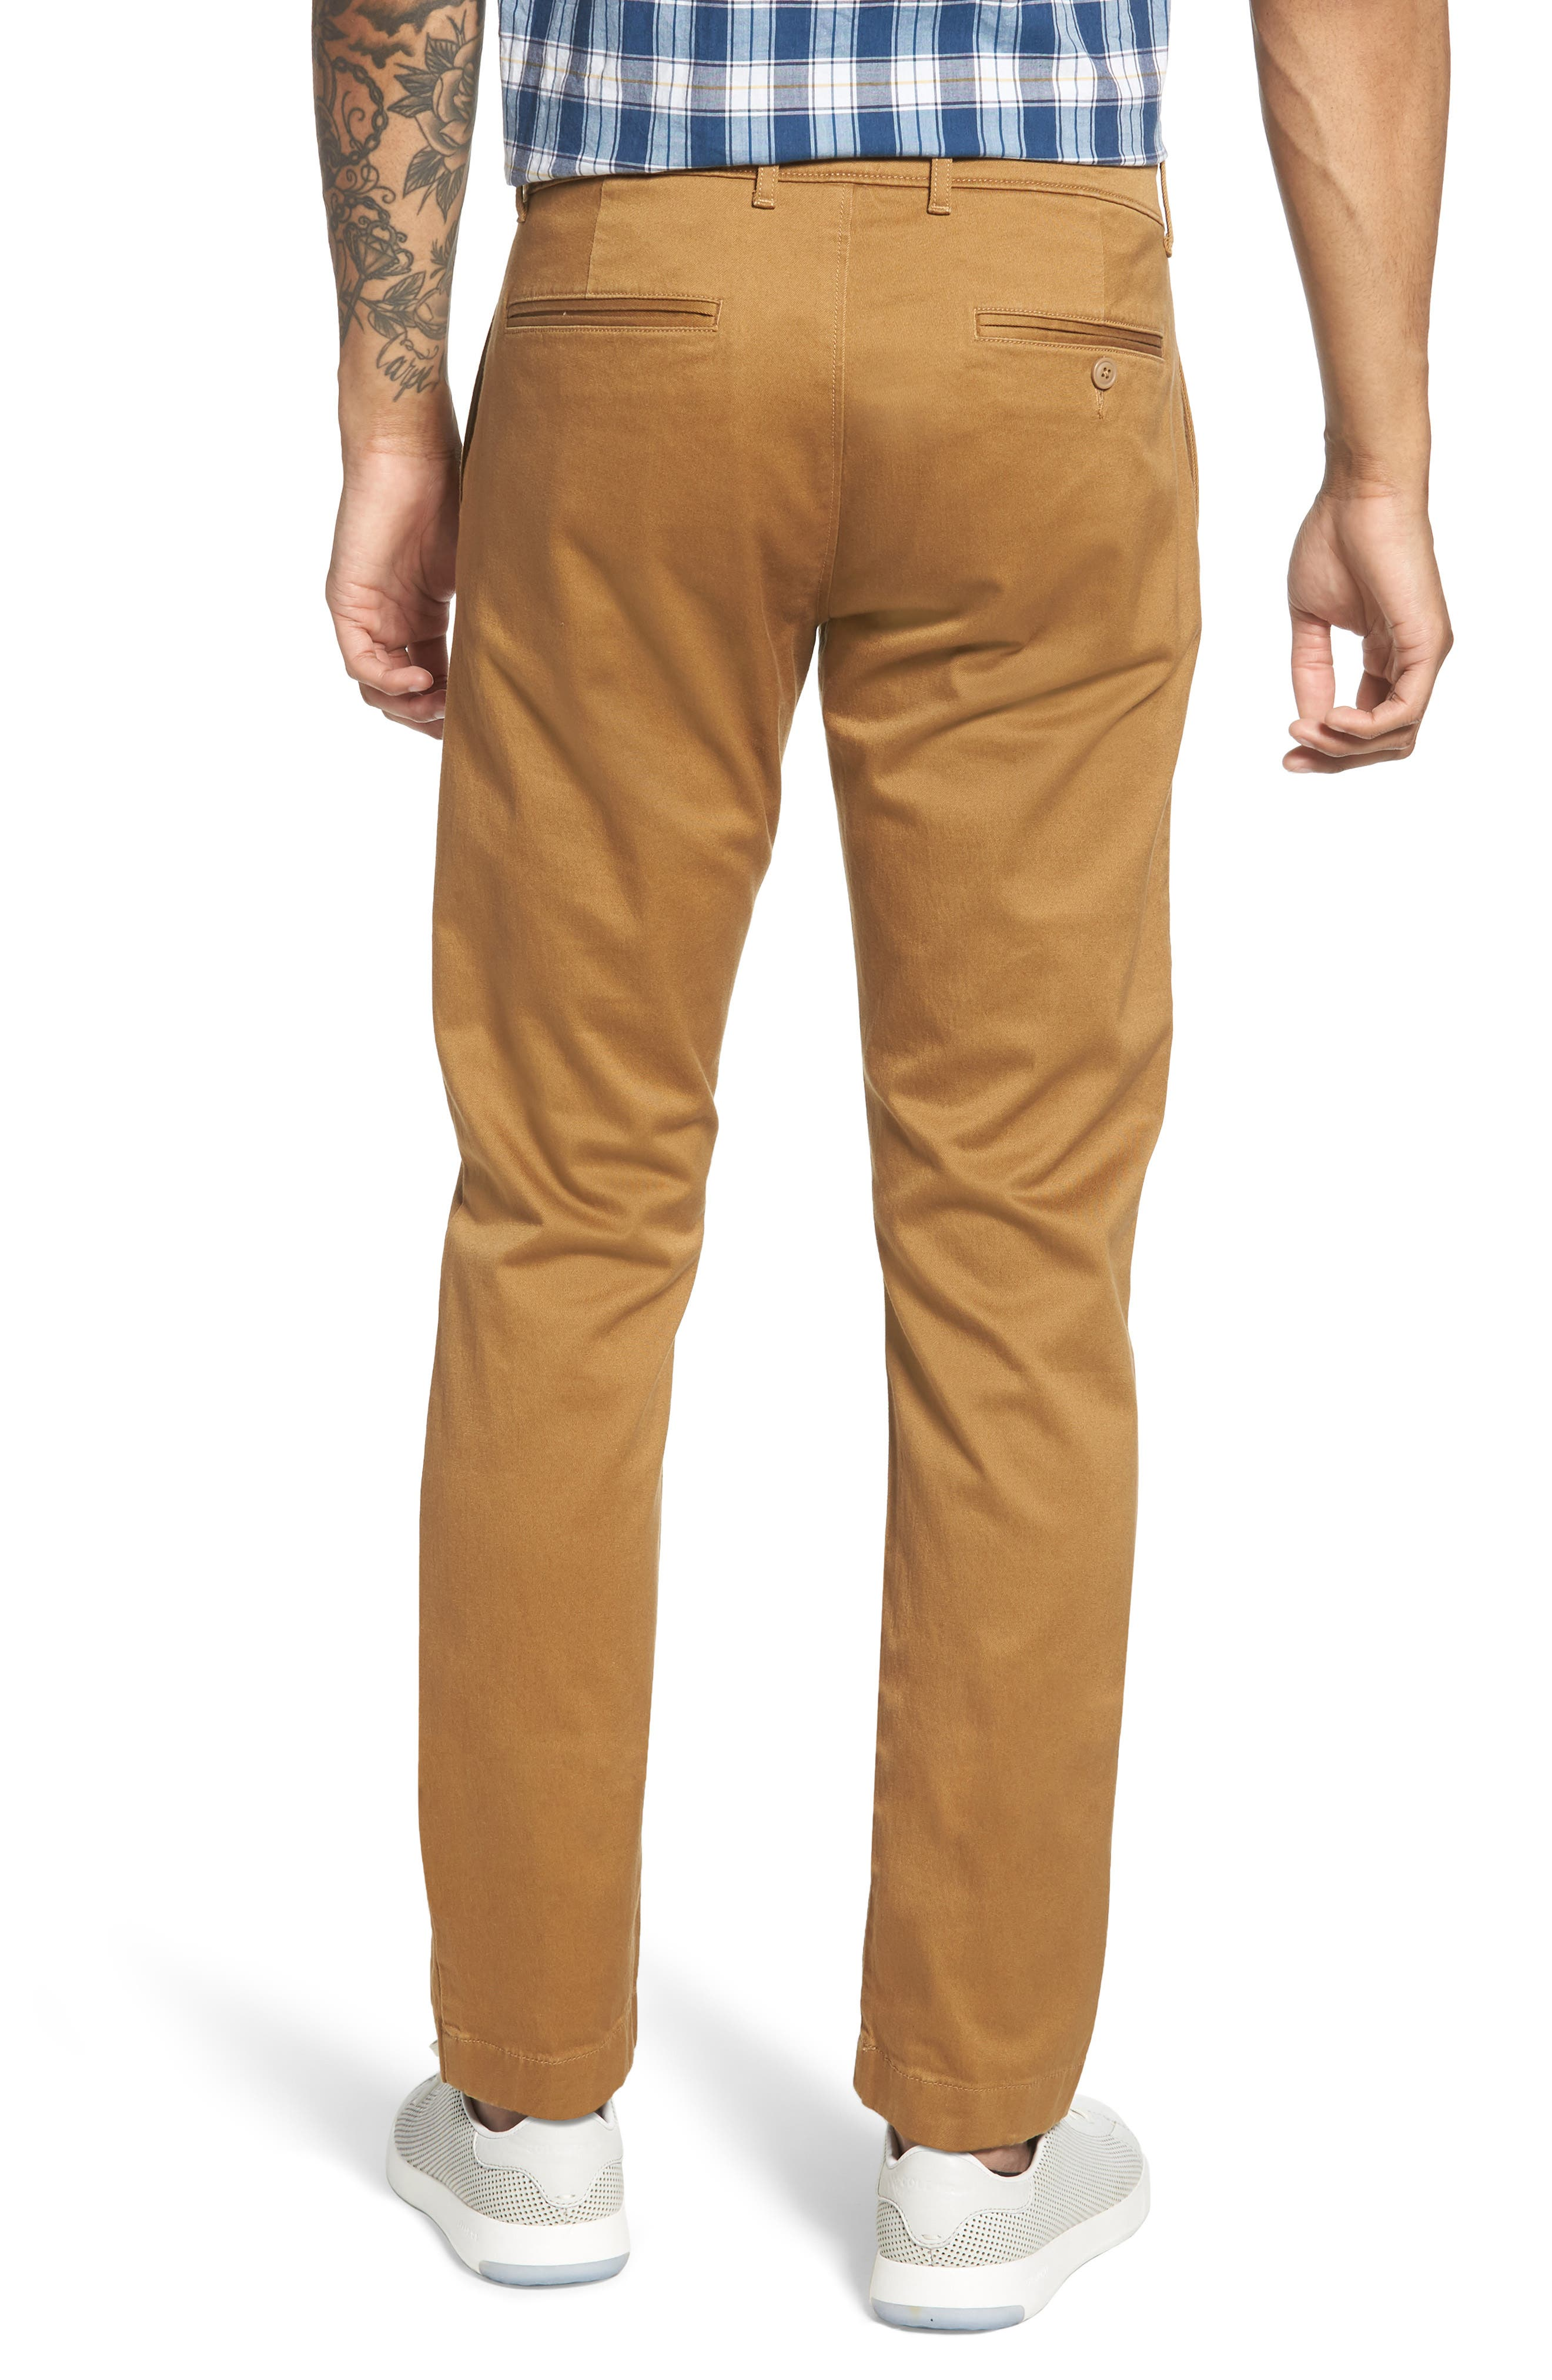 484 Slim Fit Stretch Chino Pants,                             Alternate thumbnail 16, color,